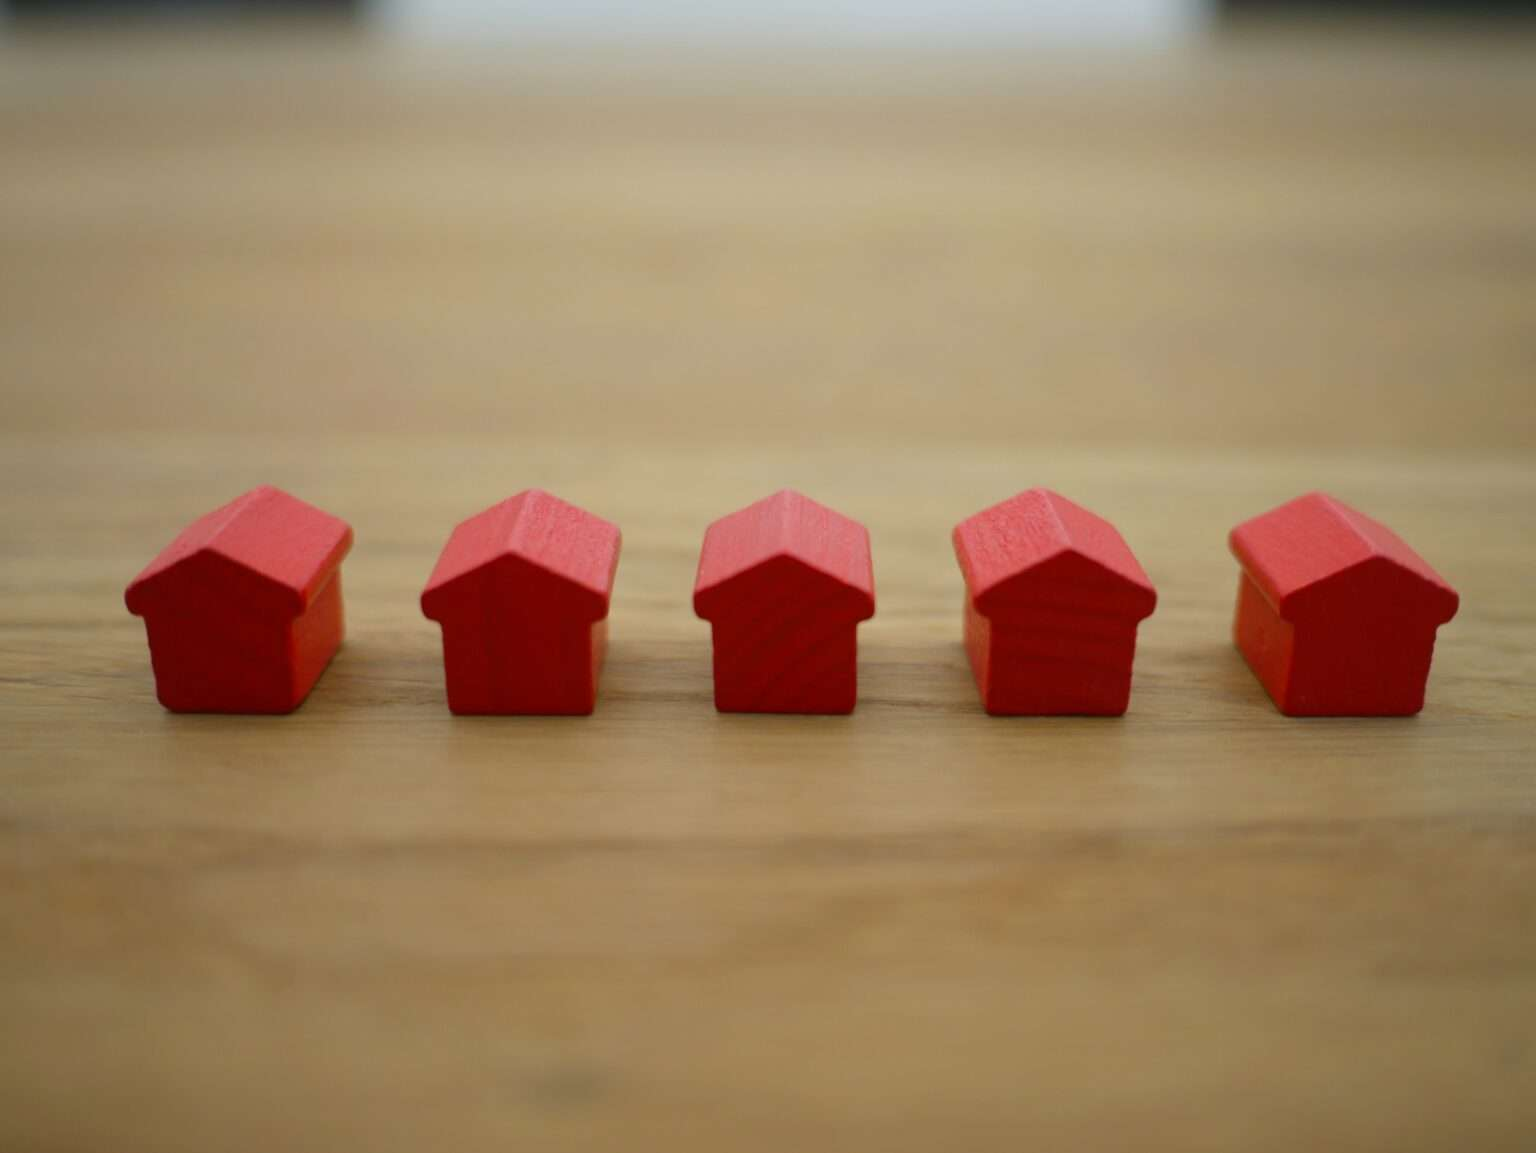 community of houses representing a home owners association